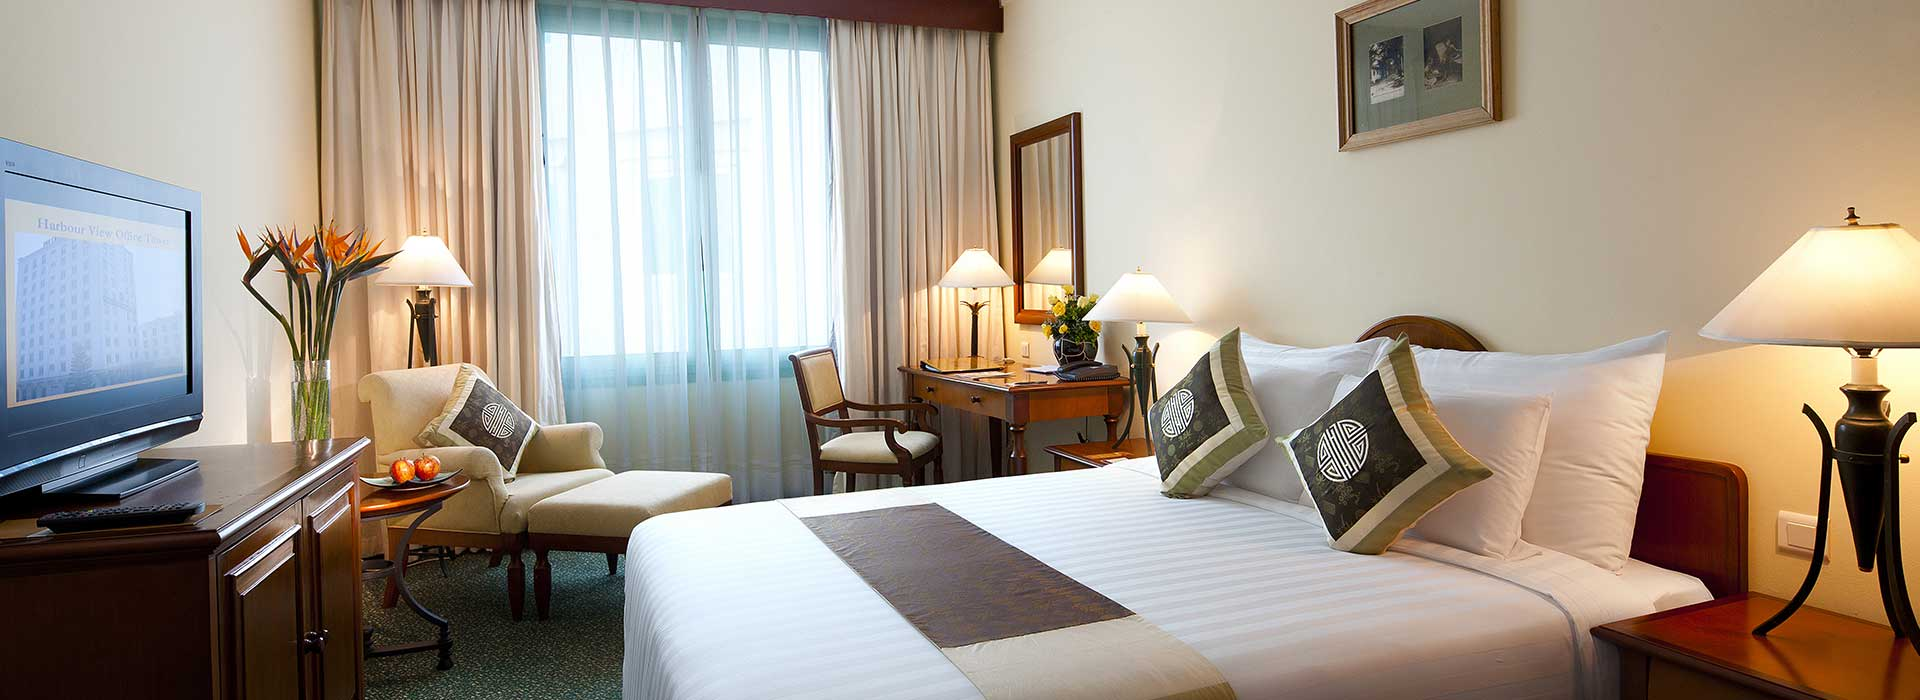 AVANI Hai Phong Harborview, Superior room interior